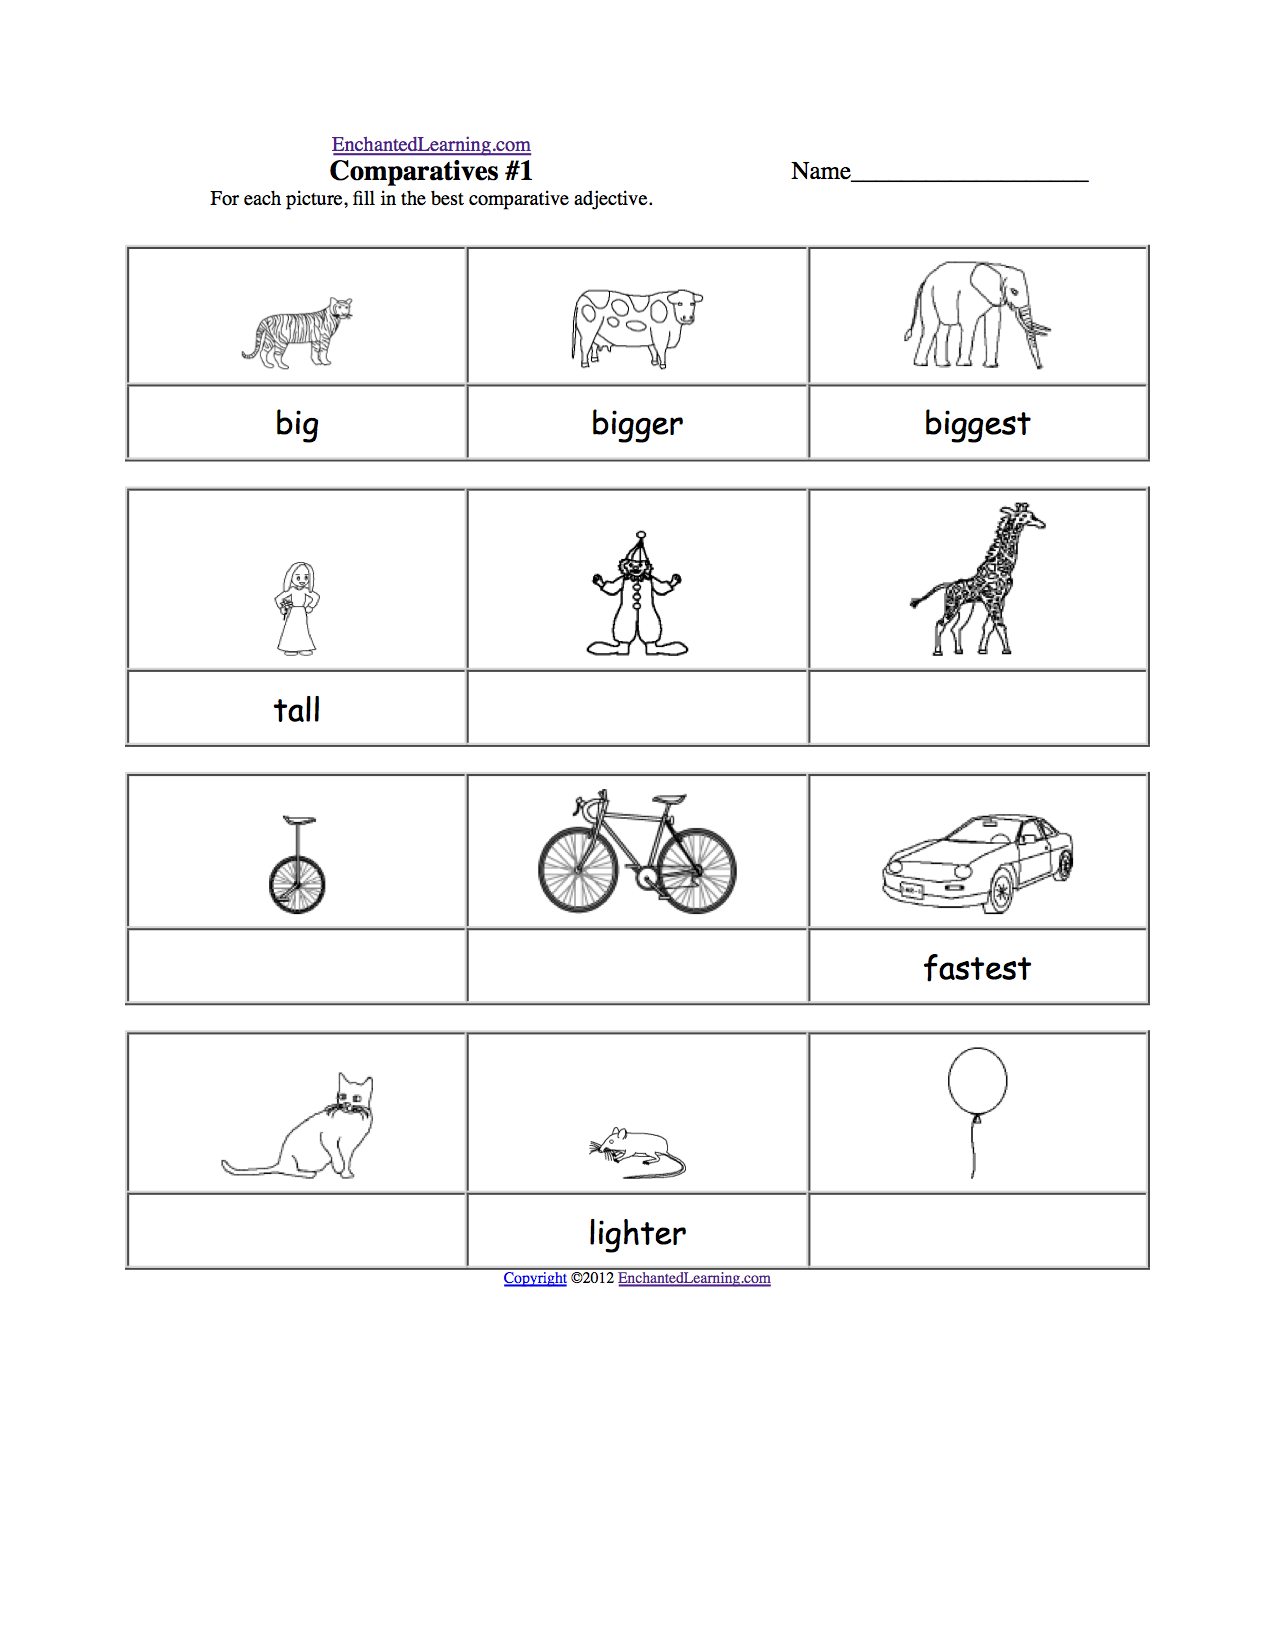 Proatmealus  Winsome Adjective Activities And Worksheets Enchantedlearningcom With Goodlooking Triple Digit Addition Worksheet Besides Wages Worksheet Furthermore Worksheets On Appositives With Attractive Igneous Rocks Worksheets Also French Prepositions Worksheet In Addition Sequencing Events In A Story Worksheets And Cursive Writing Worksheets For Kids As Well As Verb Worksheets For Grade  Additionally Combining Like Term Worksheets From Enchantedlearningcom With Proatmealus  Goodlooking Adjective Activities And Worksheets Enchantedlearningcom With Attractive Triple Digit Addition Worksheet Besides Wages Worksheet Furthermore Worksheets On Appositives And Winsome Igneous Rocks Worksheets Also French Prepositions Worksheet In Addition Sequencing Events In A Story Worksheets From Enchantedlearningcom